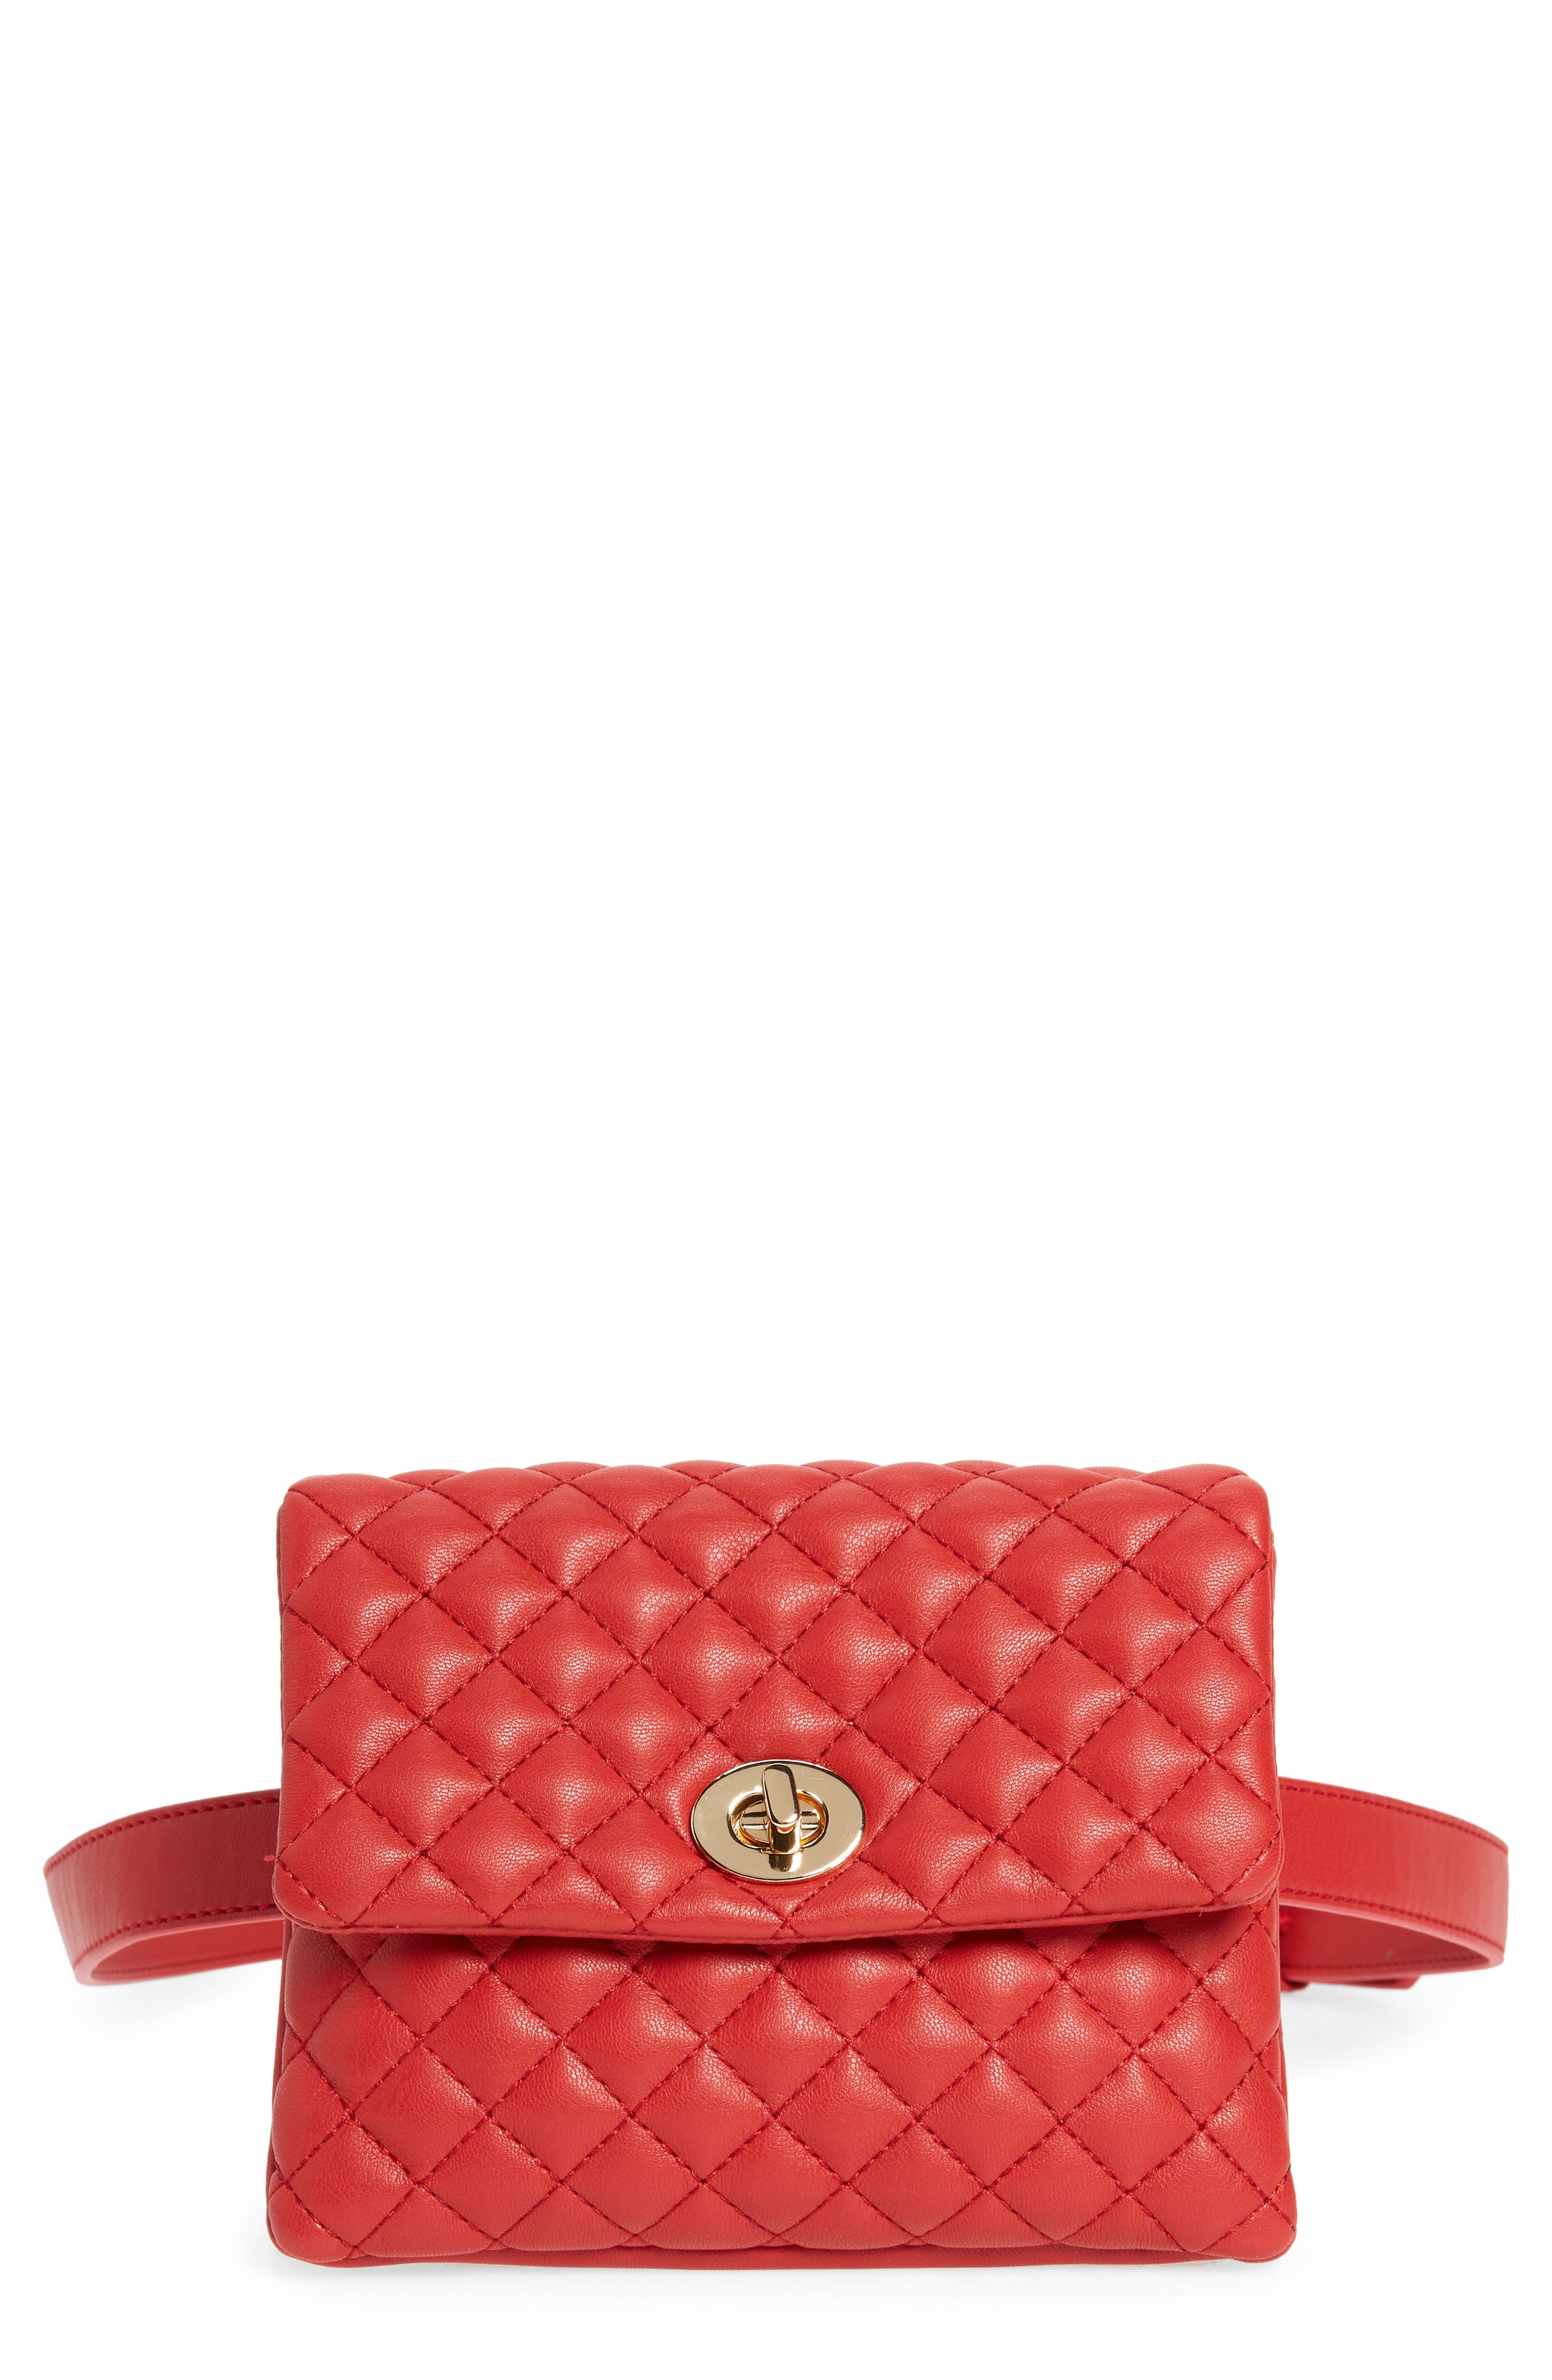 Mali + Lili Quilted Vegan Leather Convertible Belt Bag,                         Main,                         color, Red